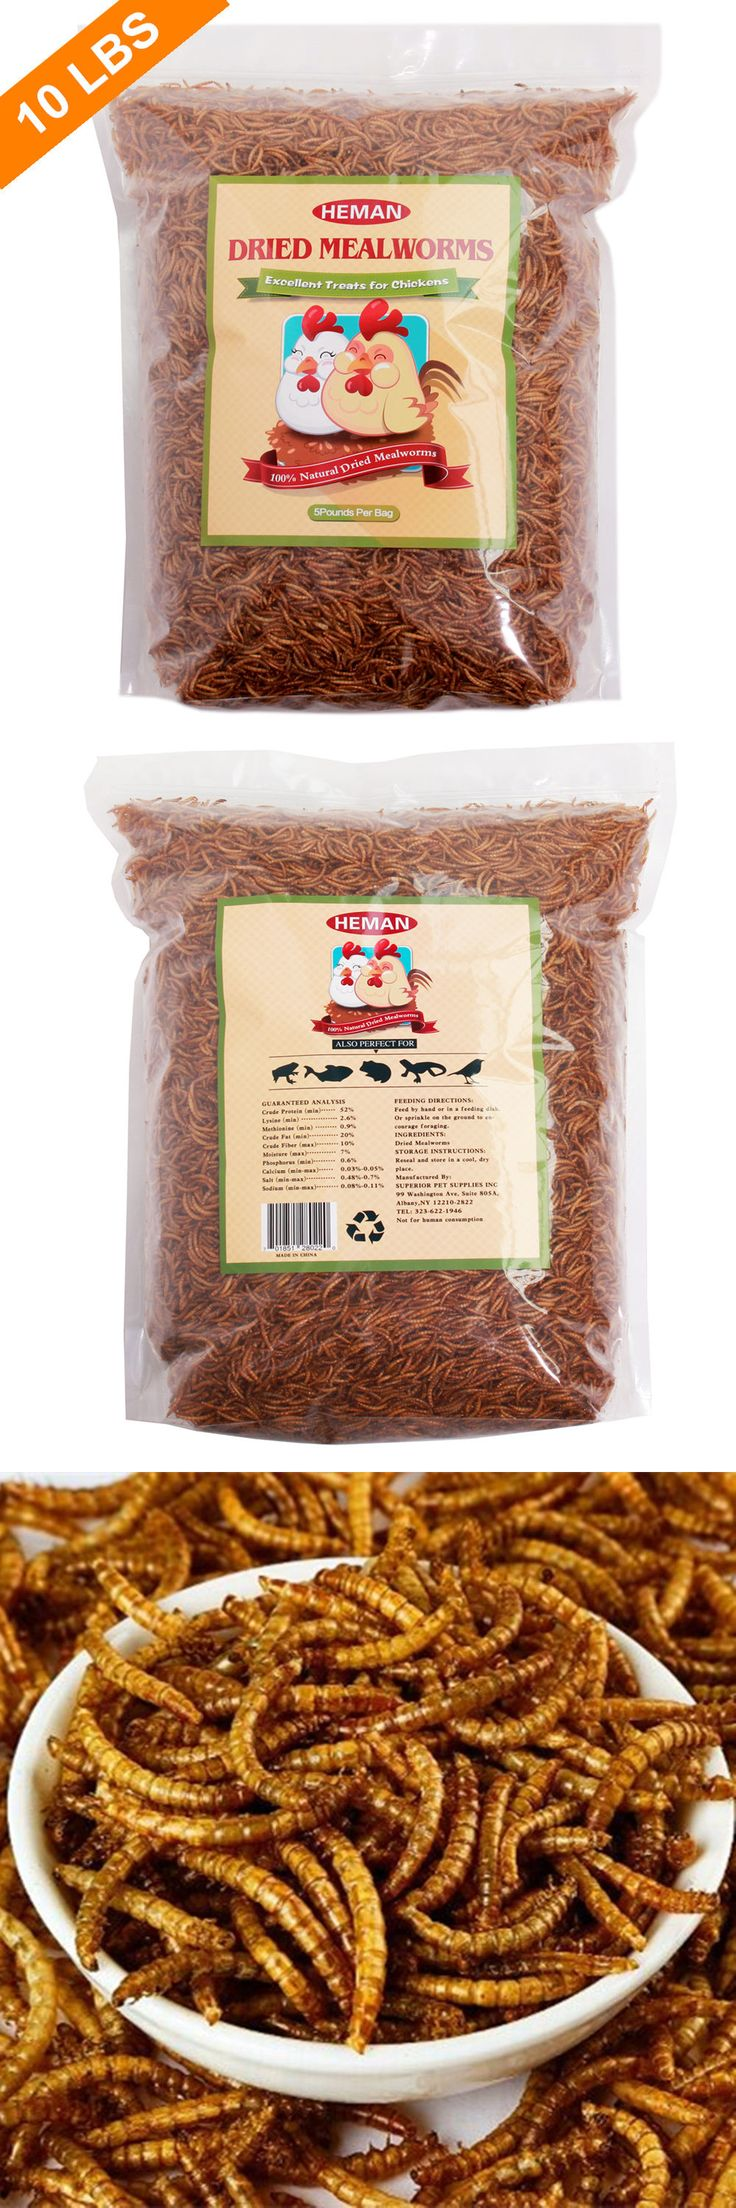 Backyard Poultry Supplies 177801: 10Lbs Bulk Dried Meal Worms For Chicken Treats, Wild Birds Food Etc BUY IT NOW ONLY: $56.99